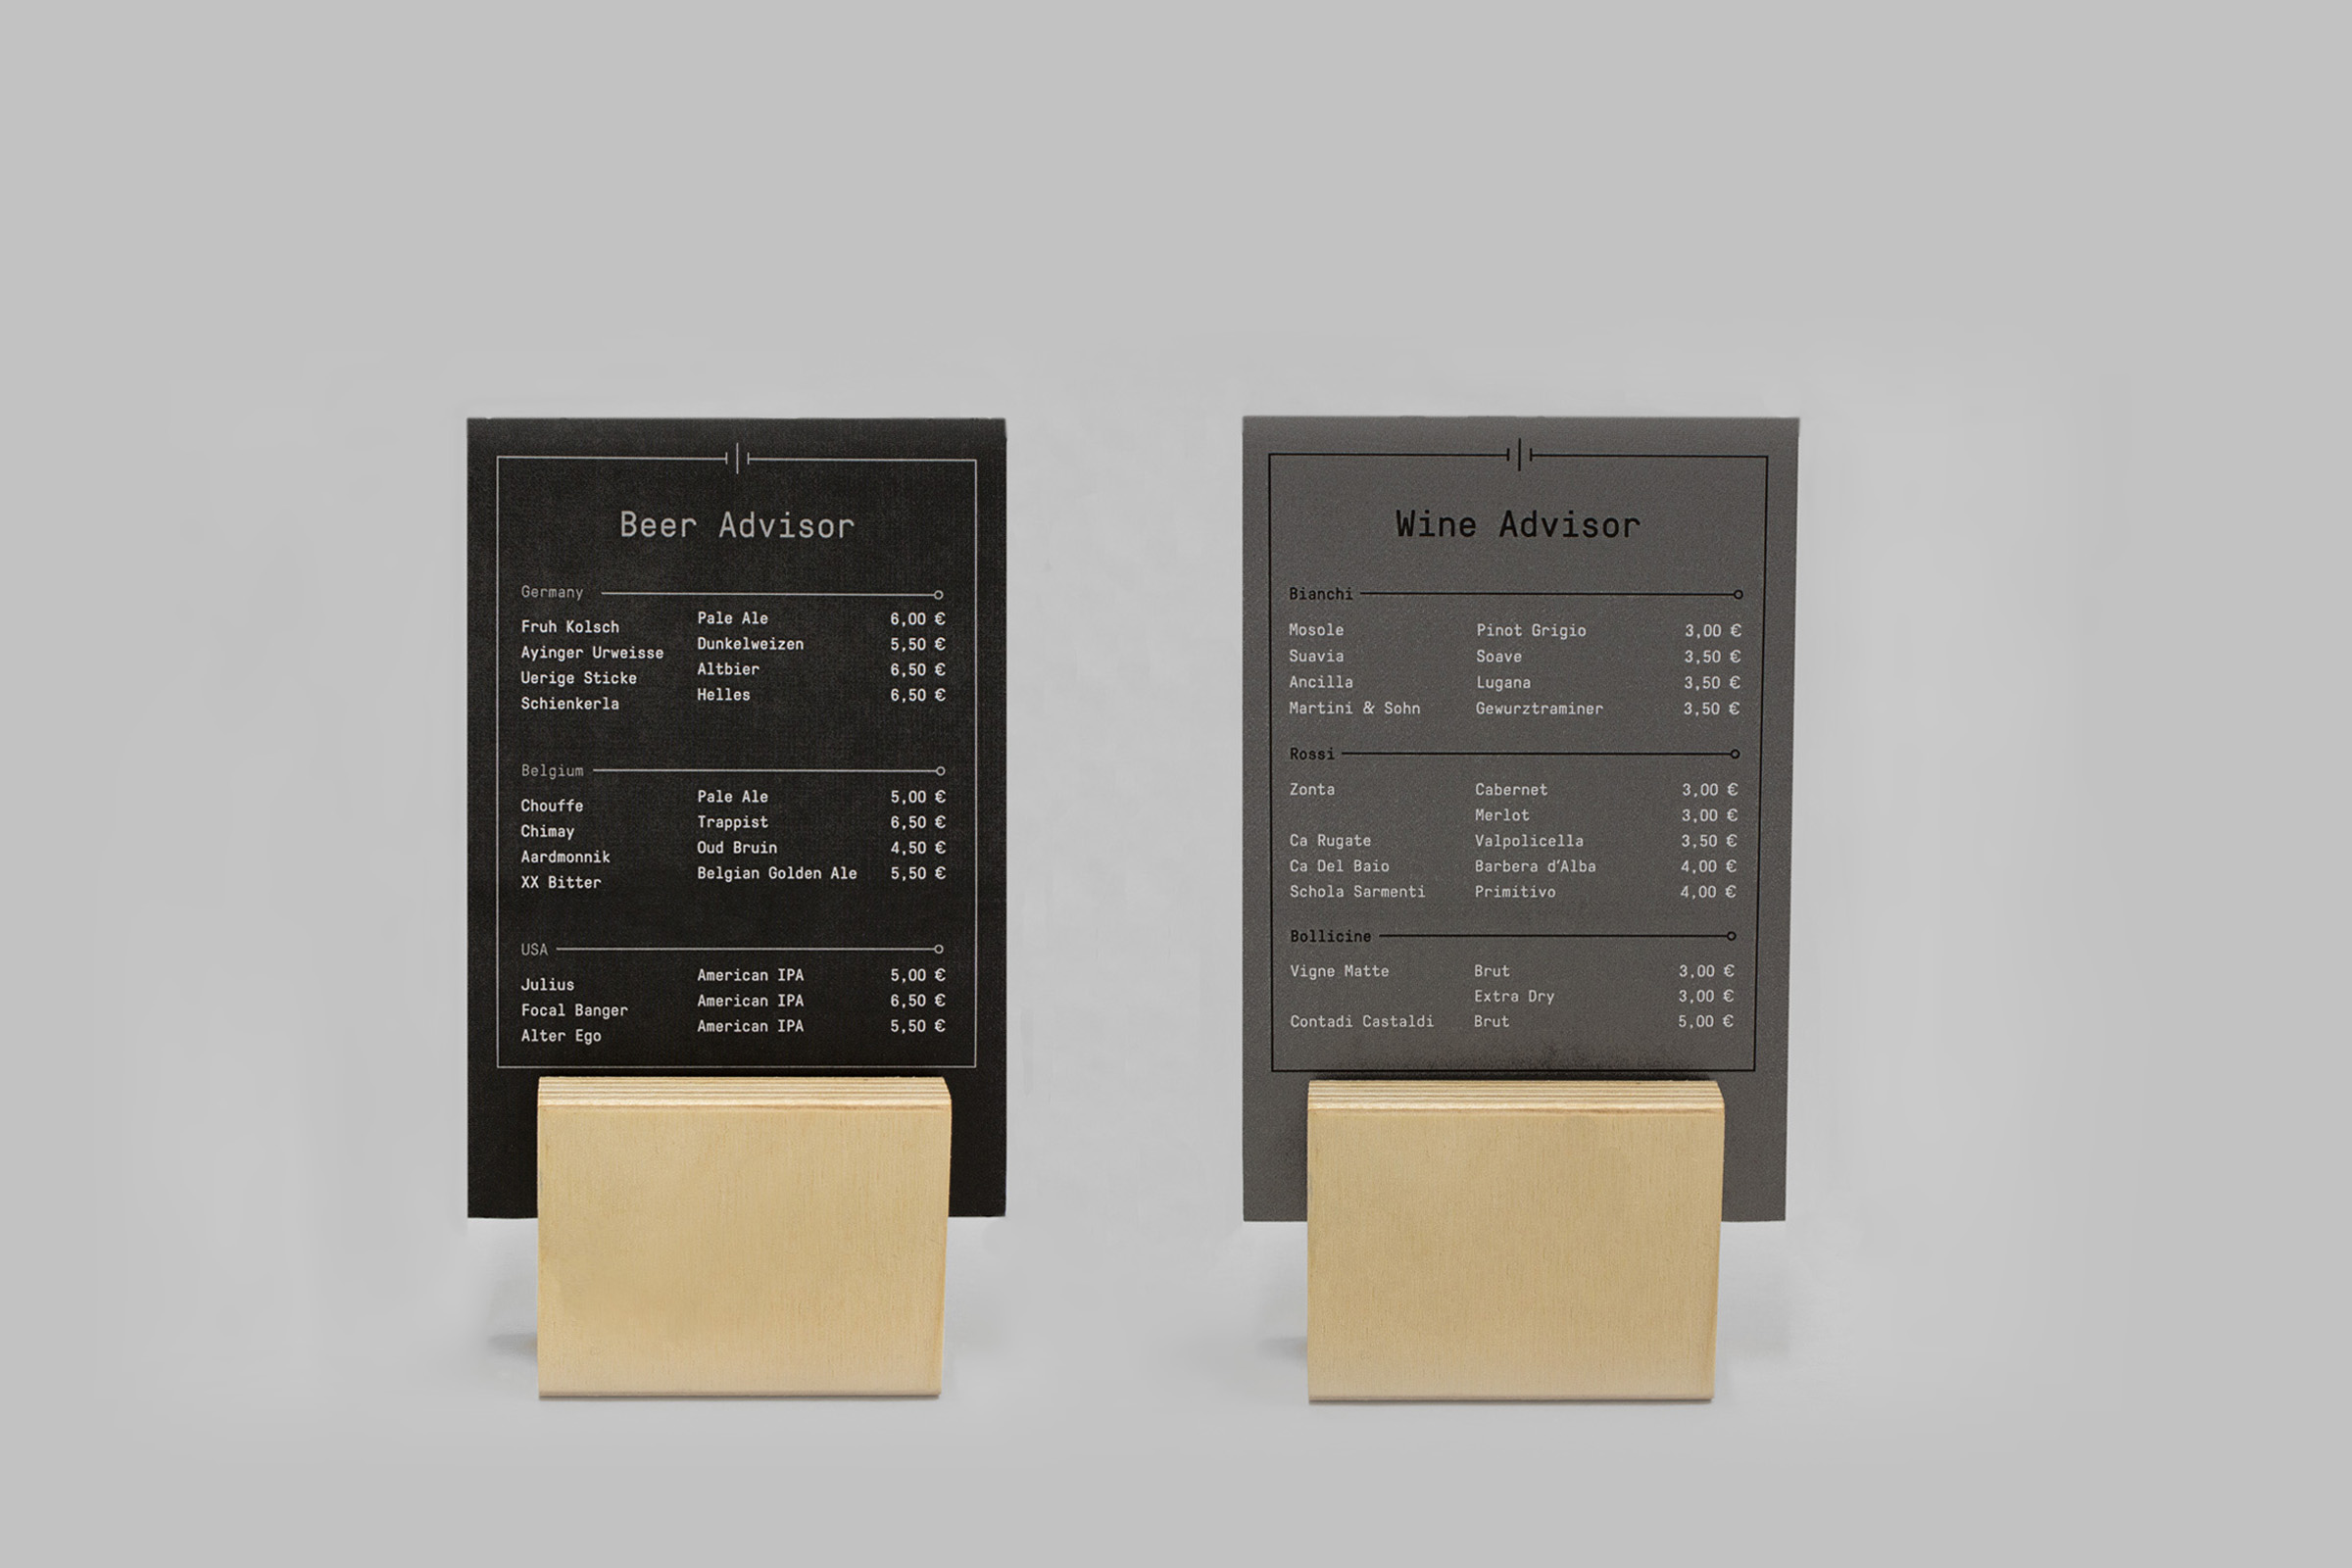 Wooden Menu Holders For Restaurants And More PlungToolscom - Table menu holders for restaurants